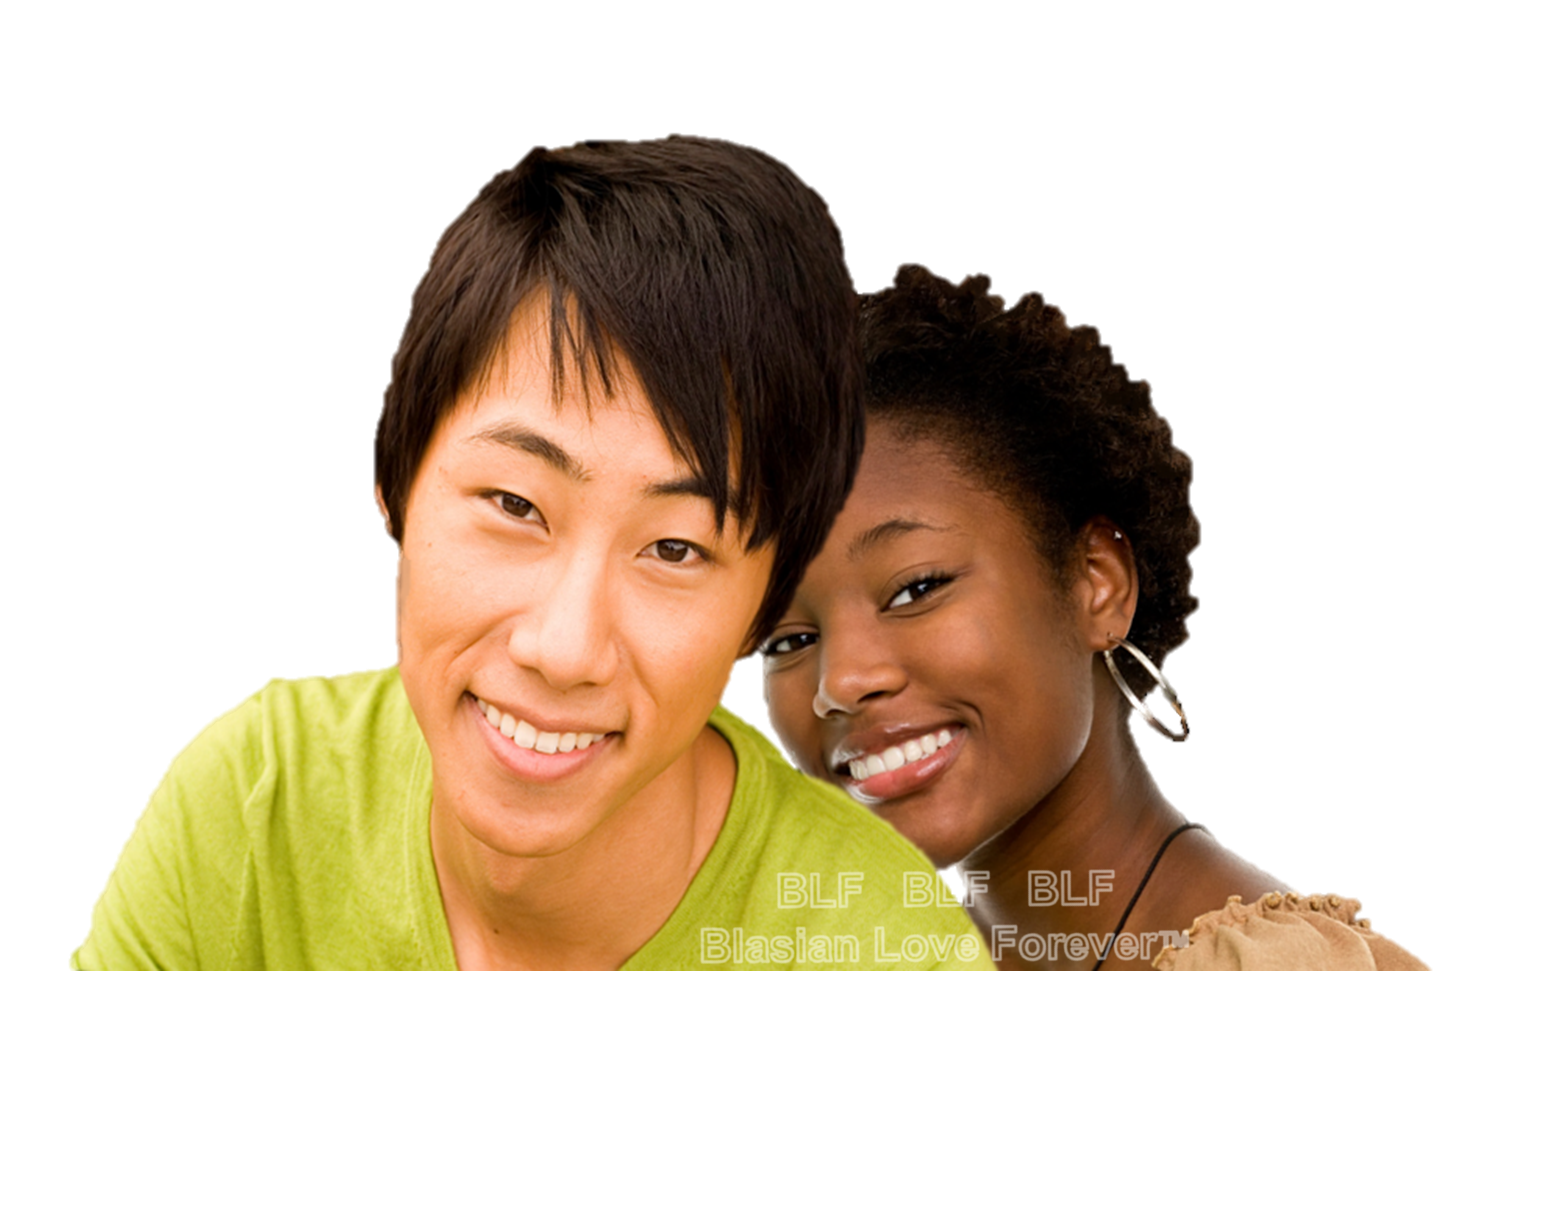 clatskanie black women dating site Black women have told me it'  but that's the historical context of black men dating white women that i unfortunately have to consider when doing the same.